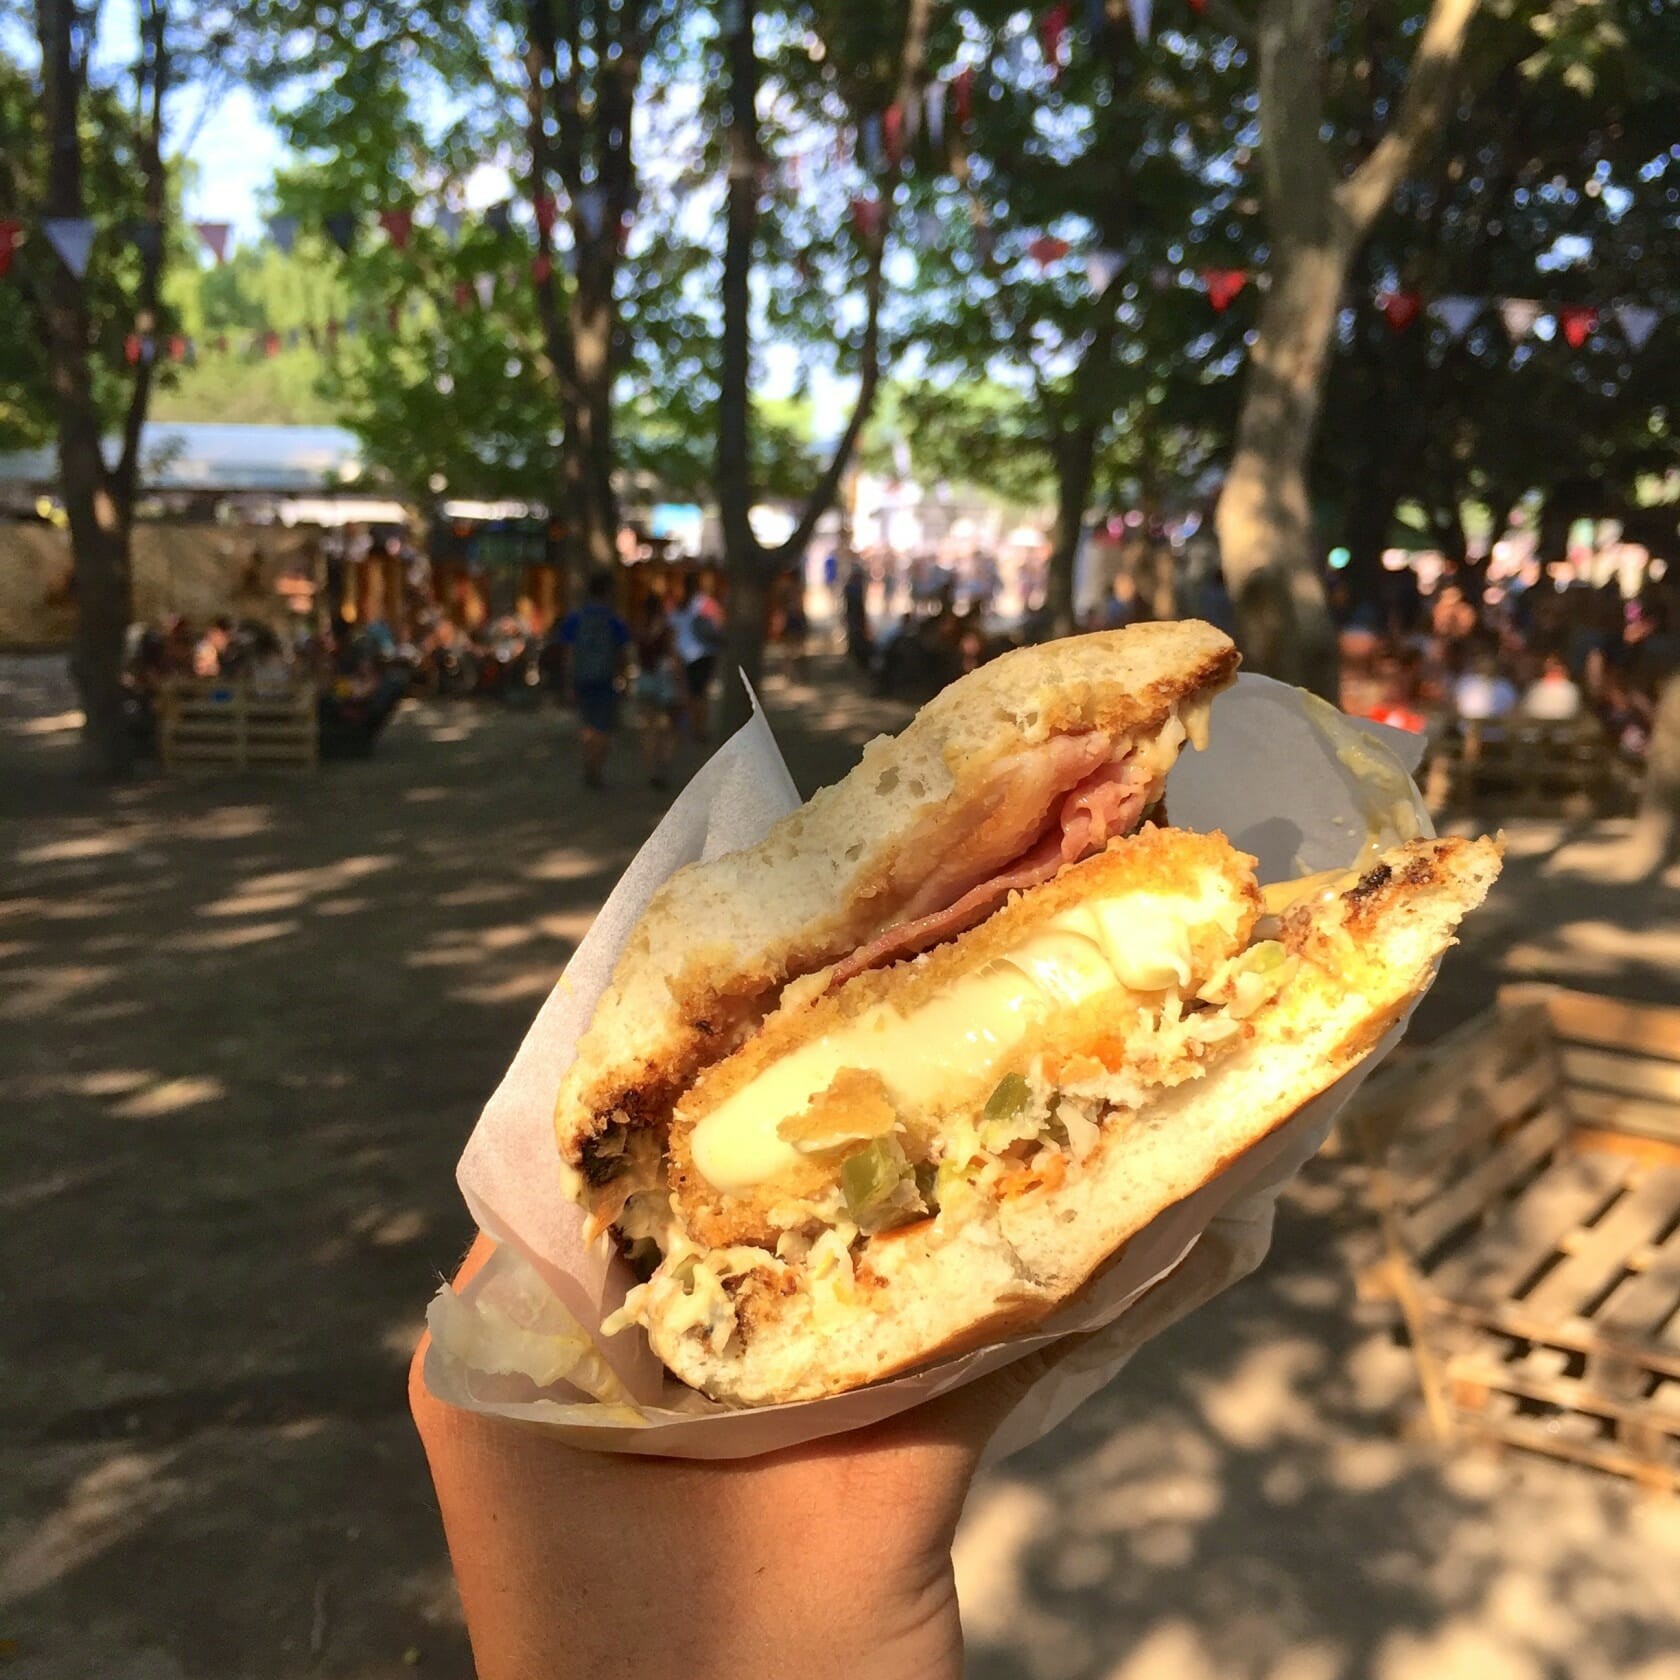 sziget review + festival guide for sziget festival in budapest august food options at sziget